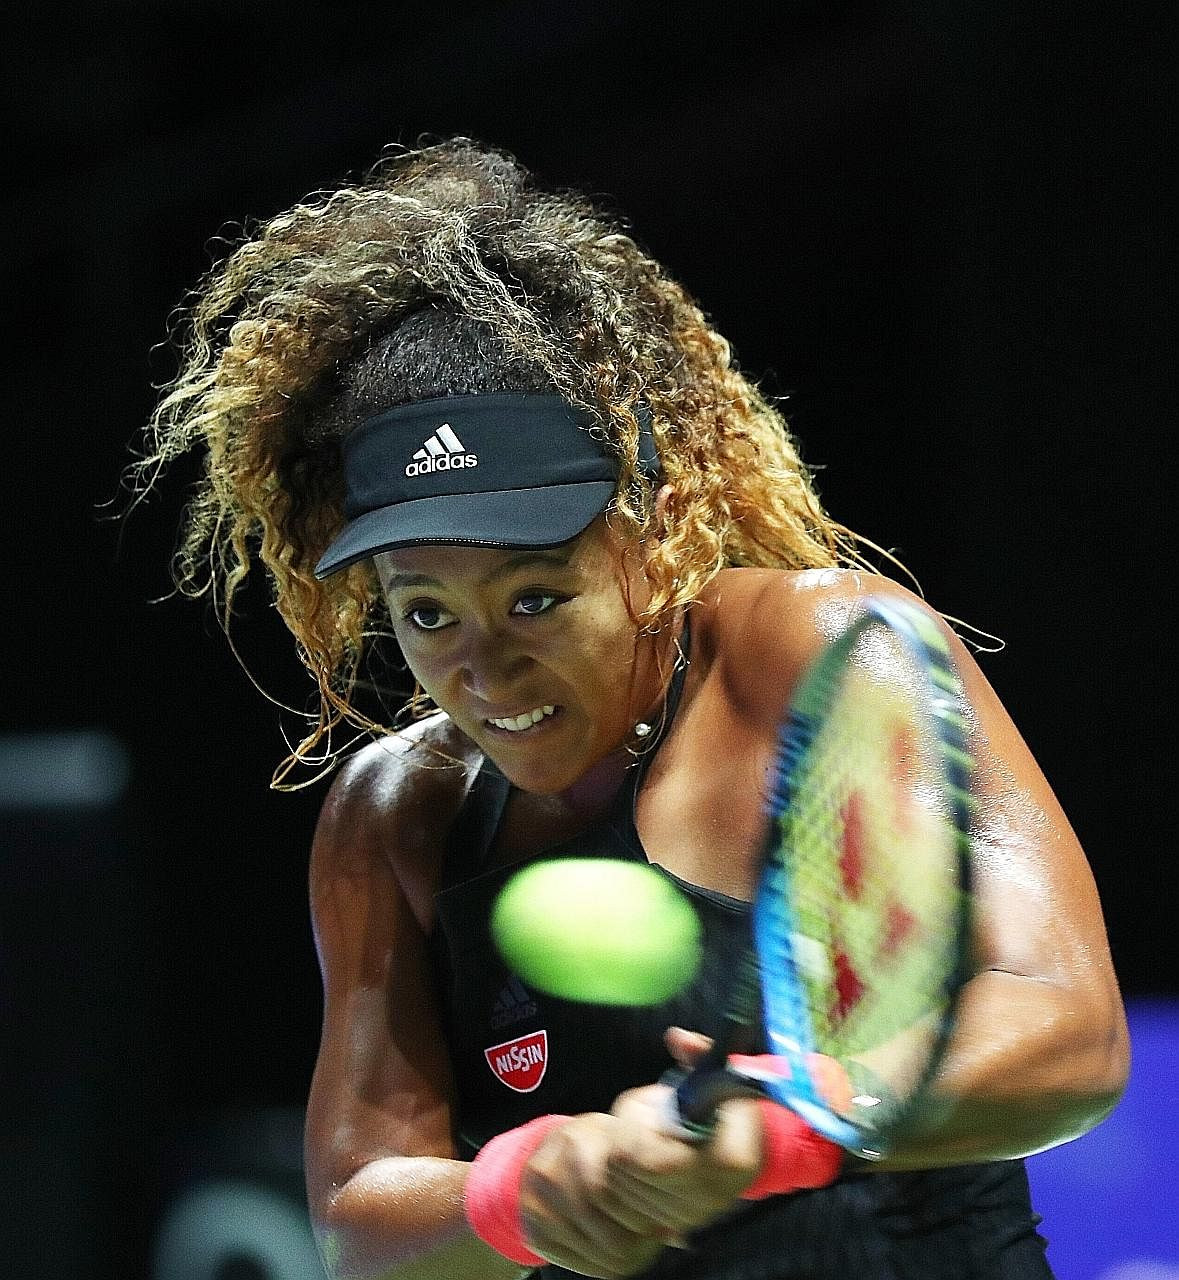 Naomi Osaka, 21, will start wearing Nike gear at the Porsche Tennis Grand Prix in Stuttgart, Germany, this month. She already has deals with All Nippon Airways, Nissan, Shiseido and Citizen, among others.